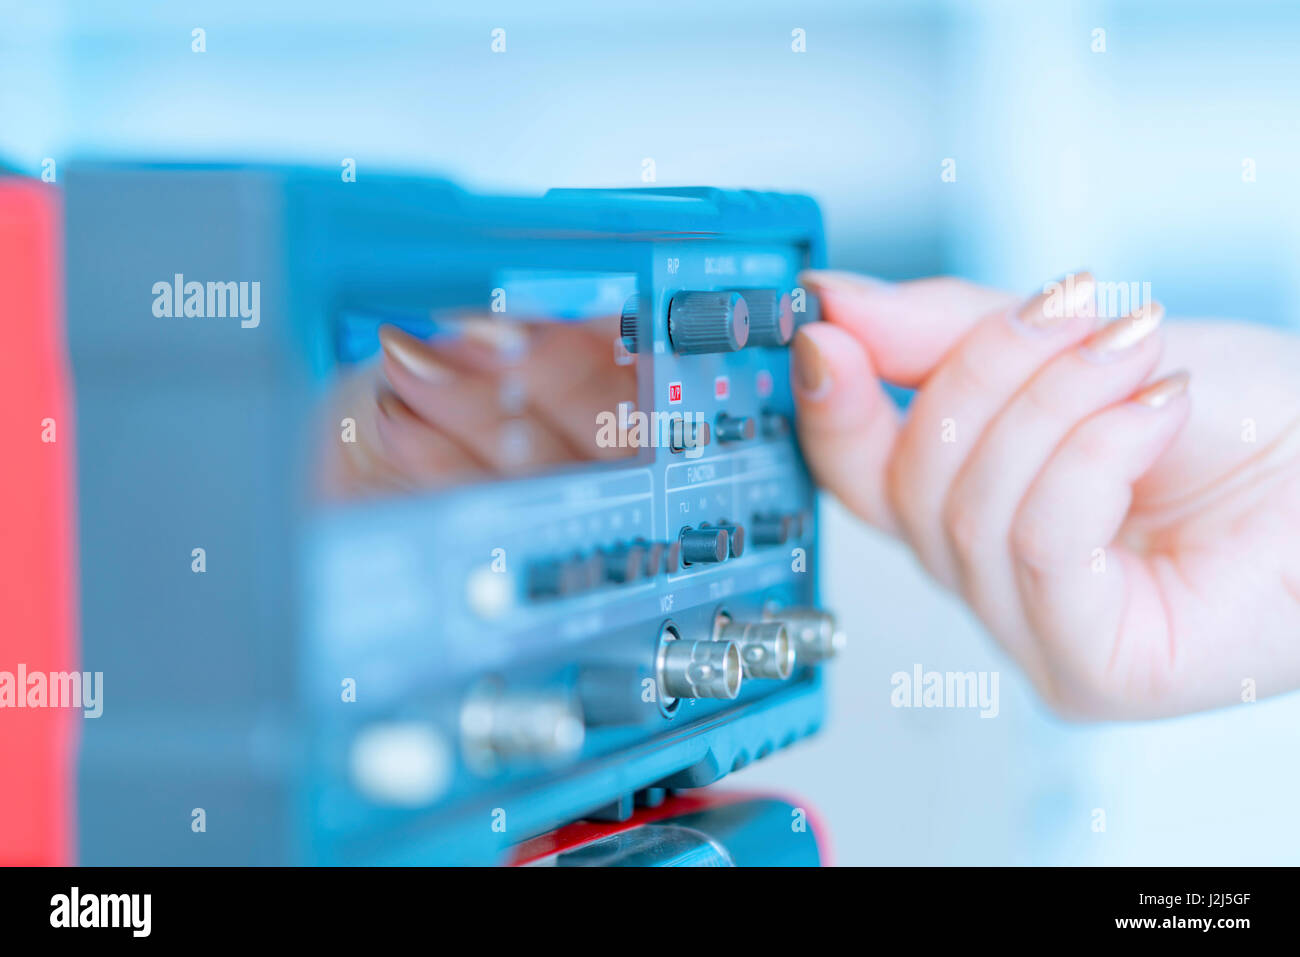 Person using control panel. - Stock Image